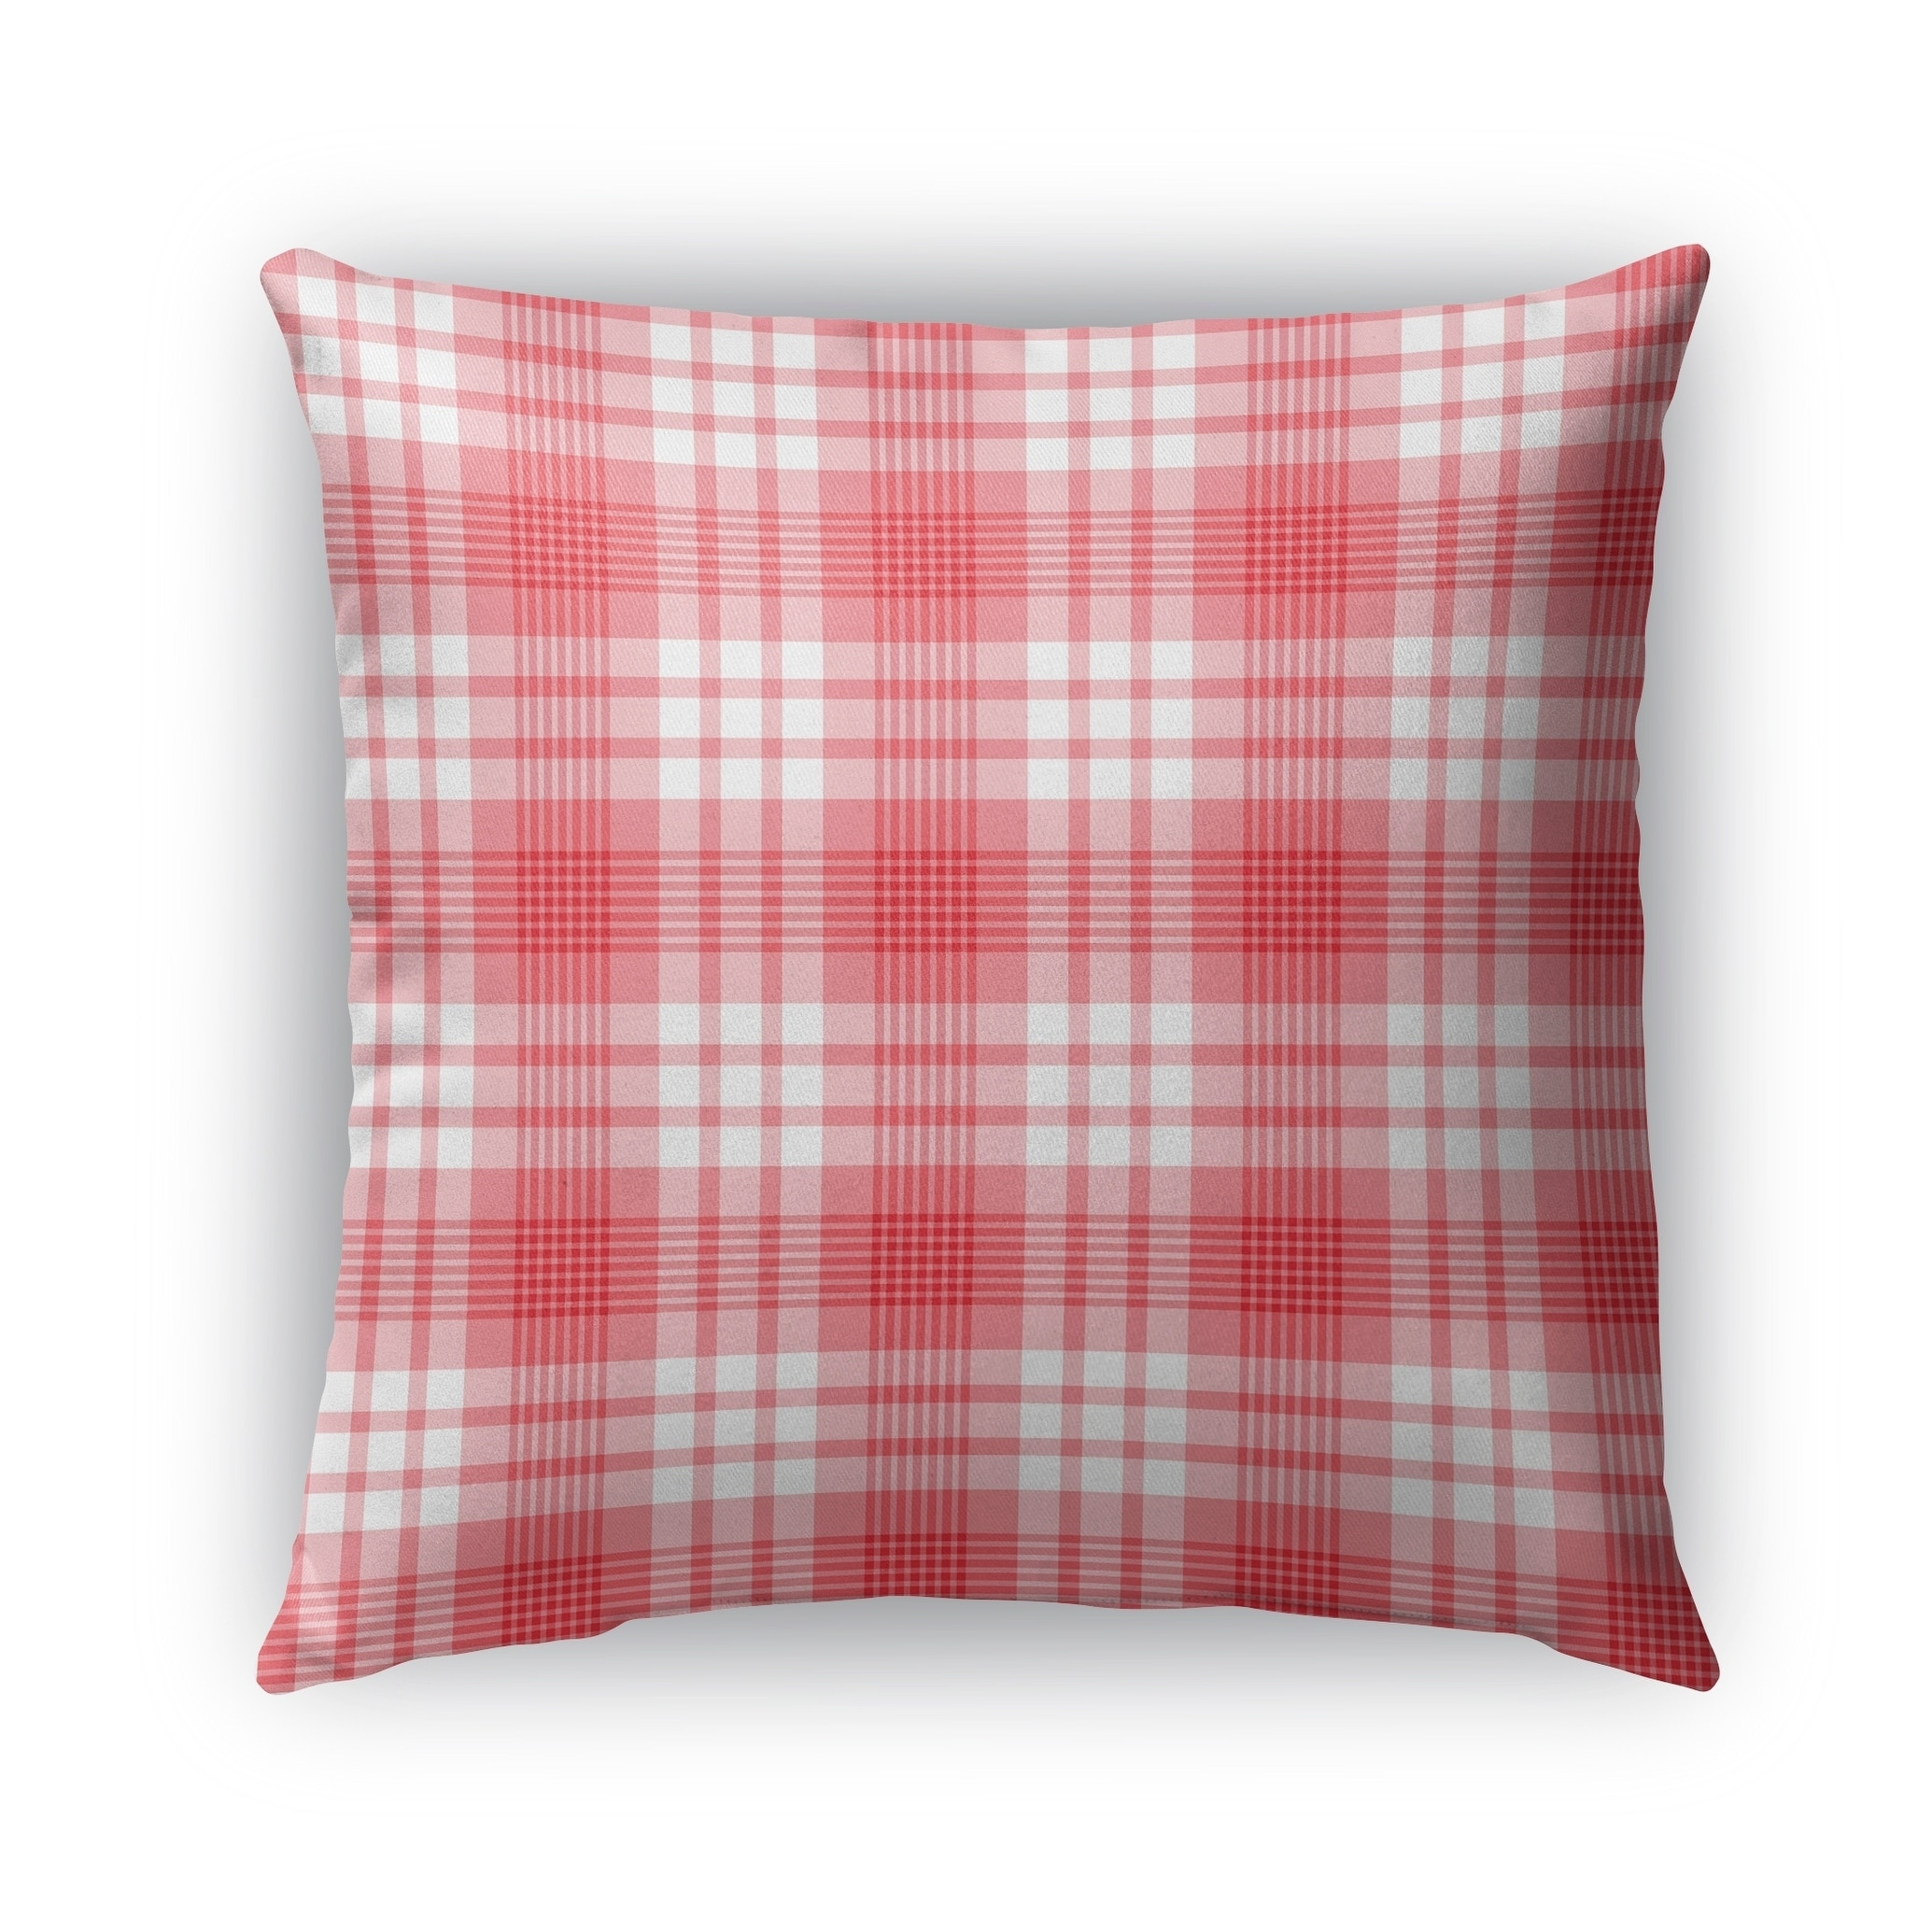 Kavka Designs red; pink candy cane plaid outdoor pillow with insert (26 x 26)